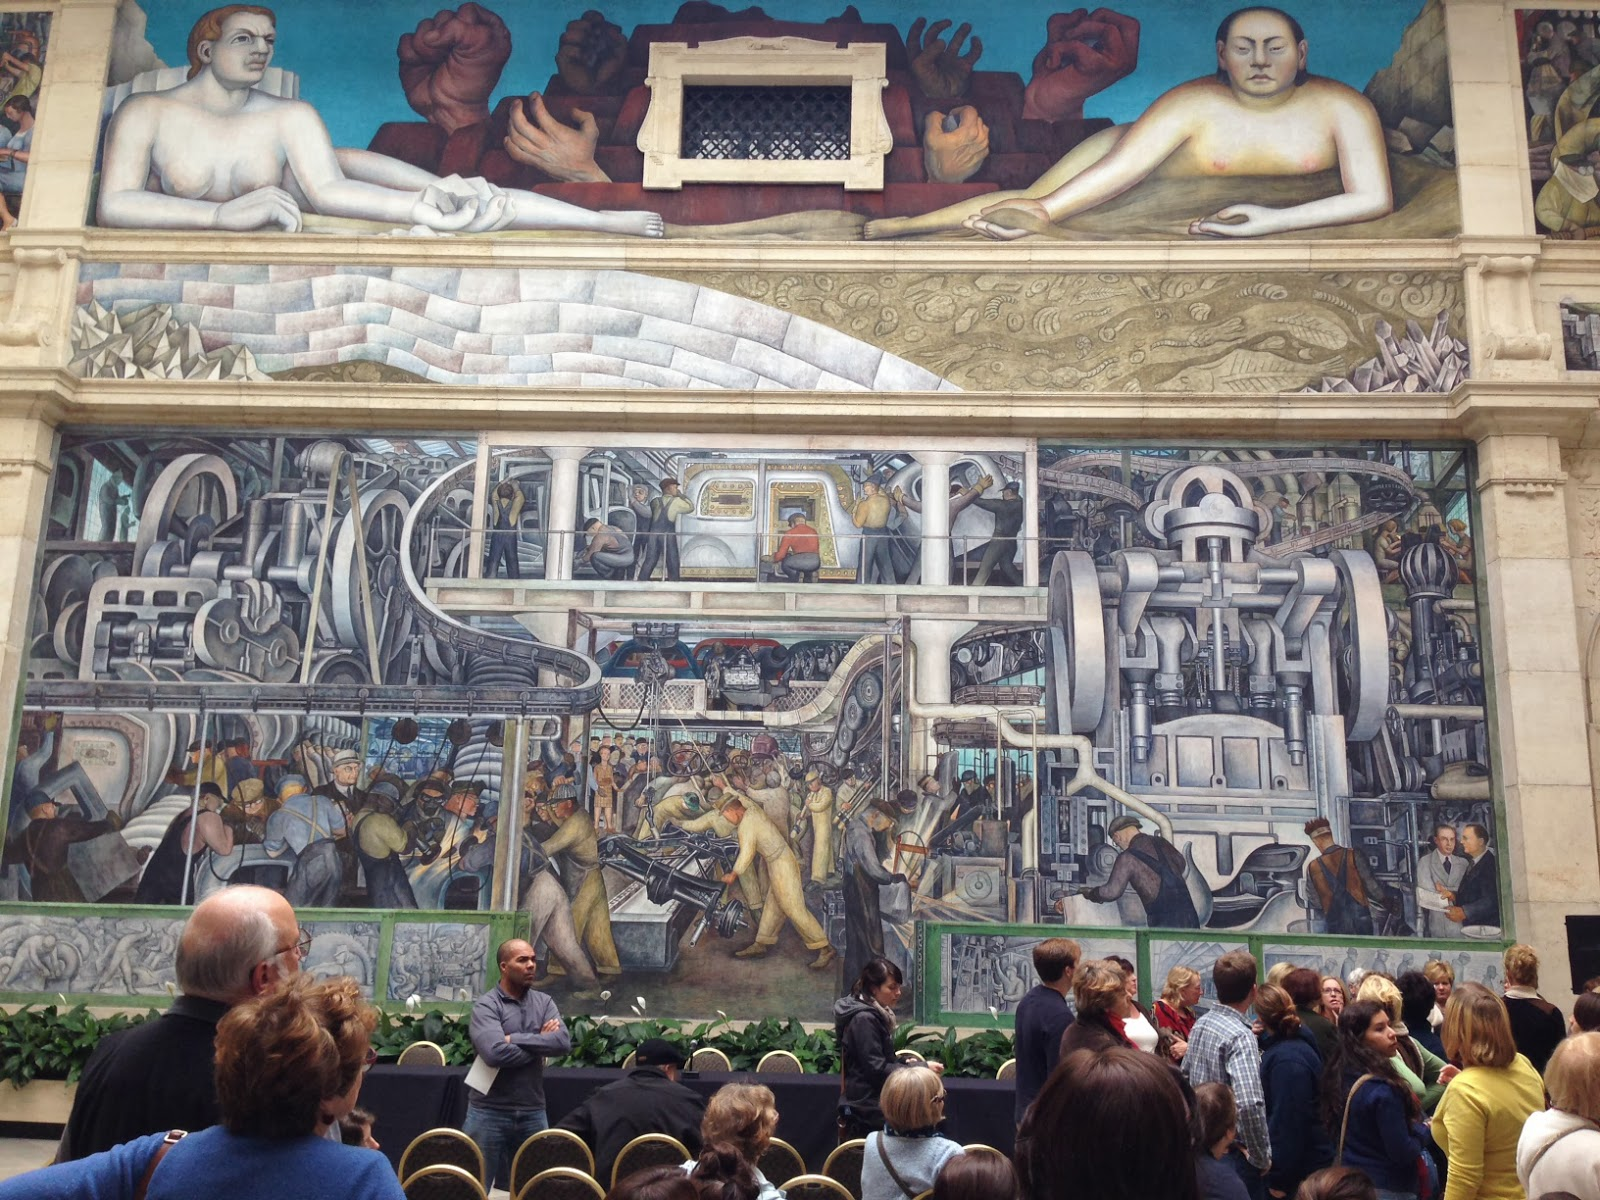 Something between want and desire detroit part 3 dia for Diego rivera dia mural